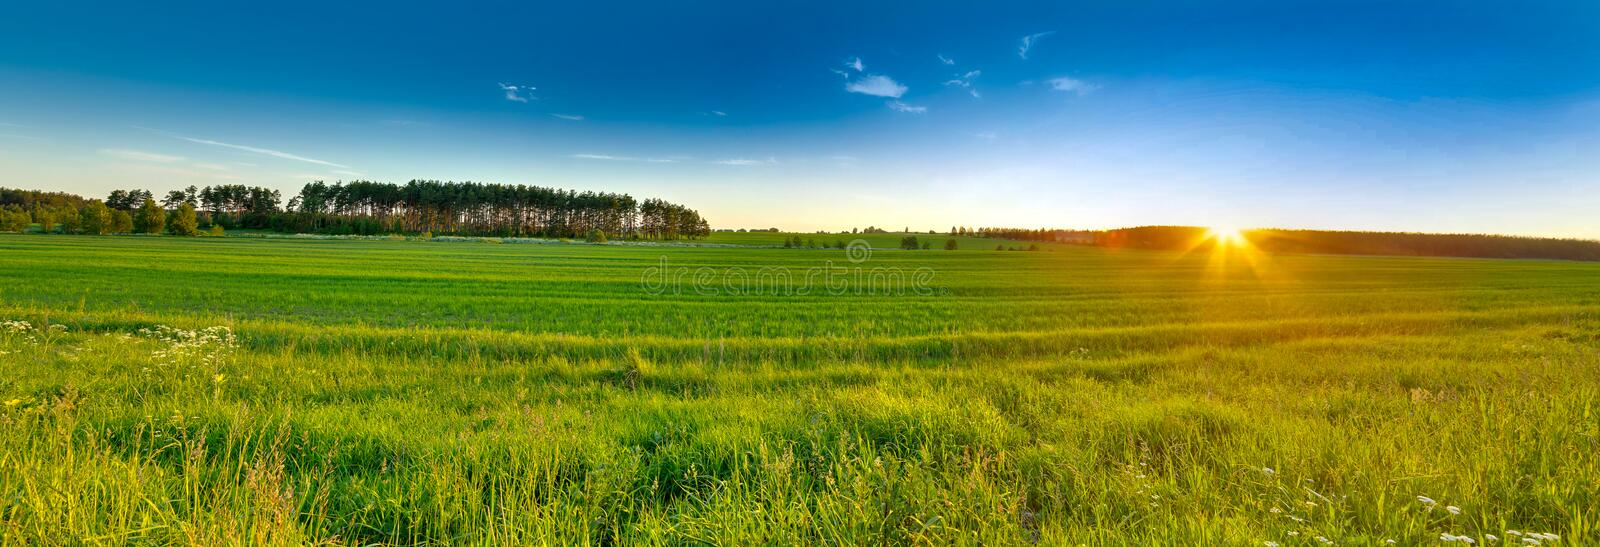 Sunset over the green meadow and with a nice blue sky in the background royalty free stock images